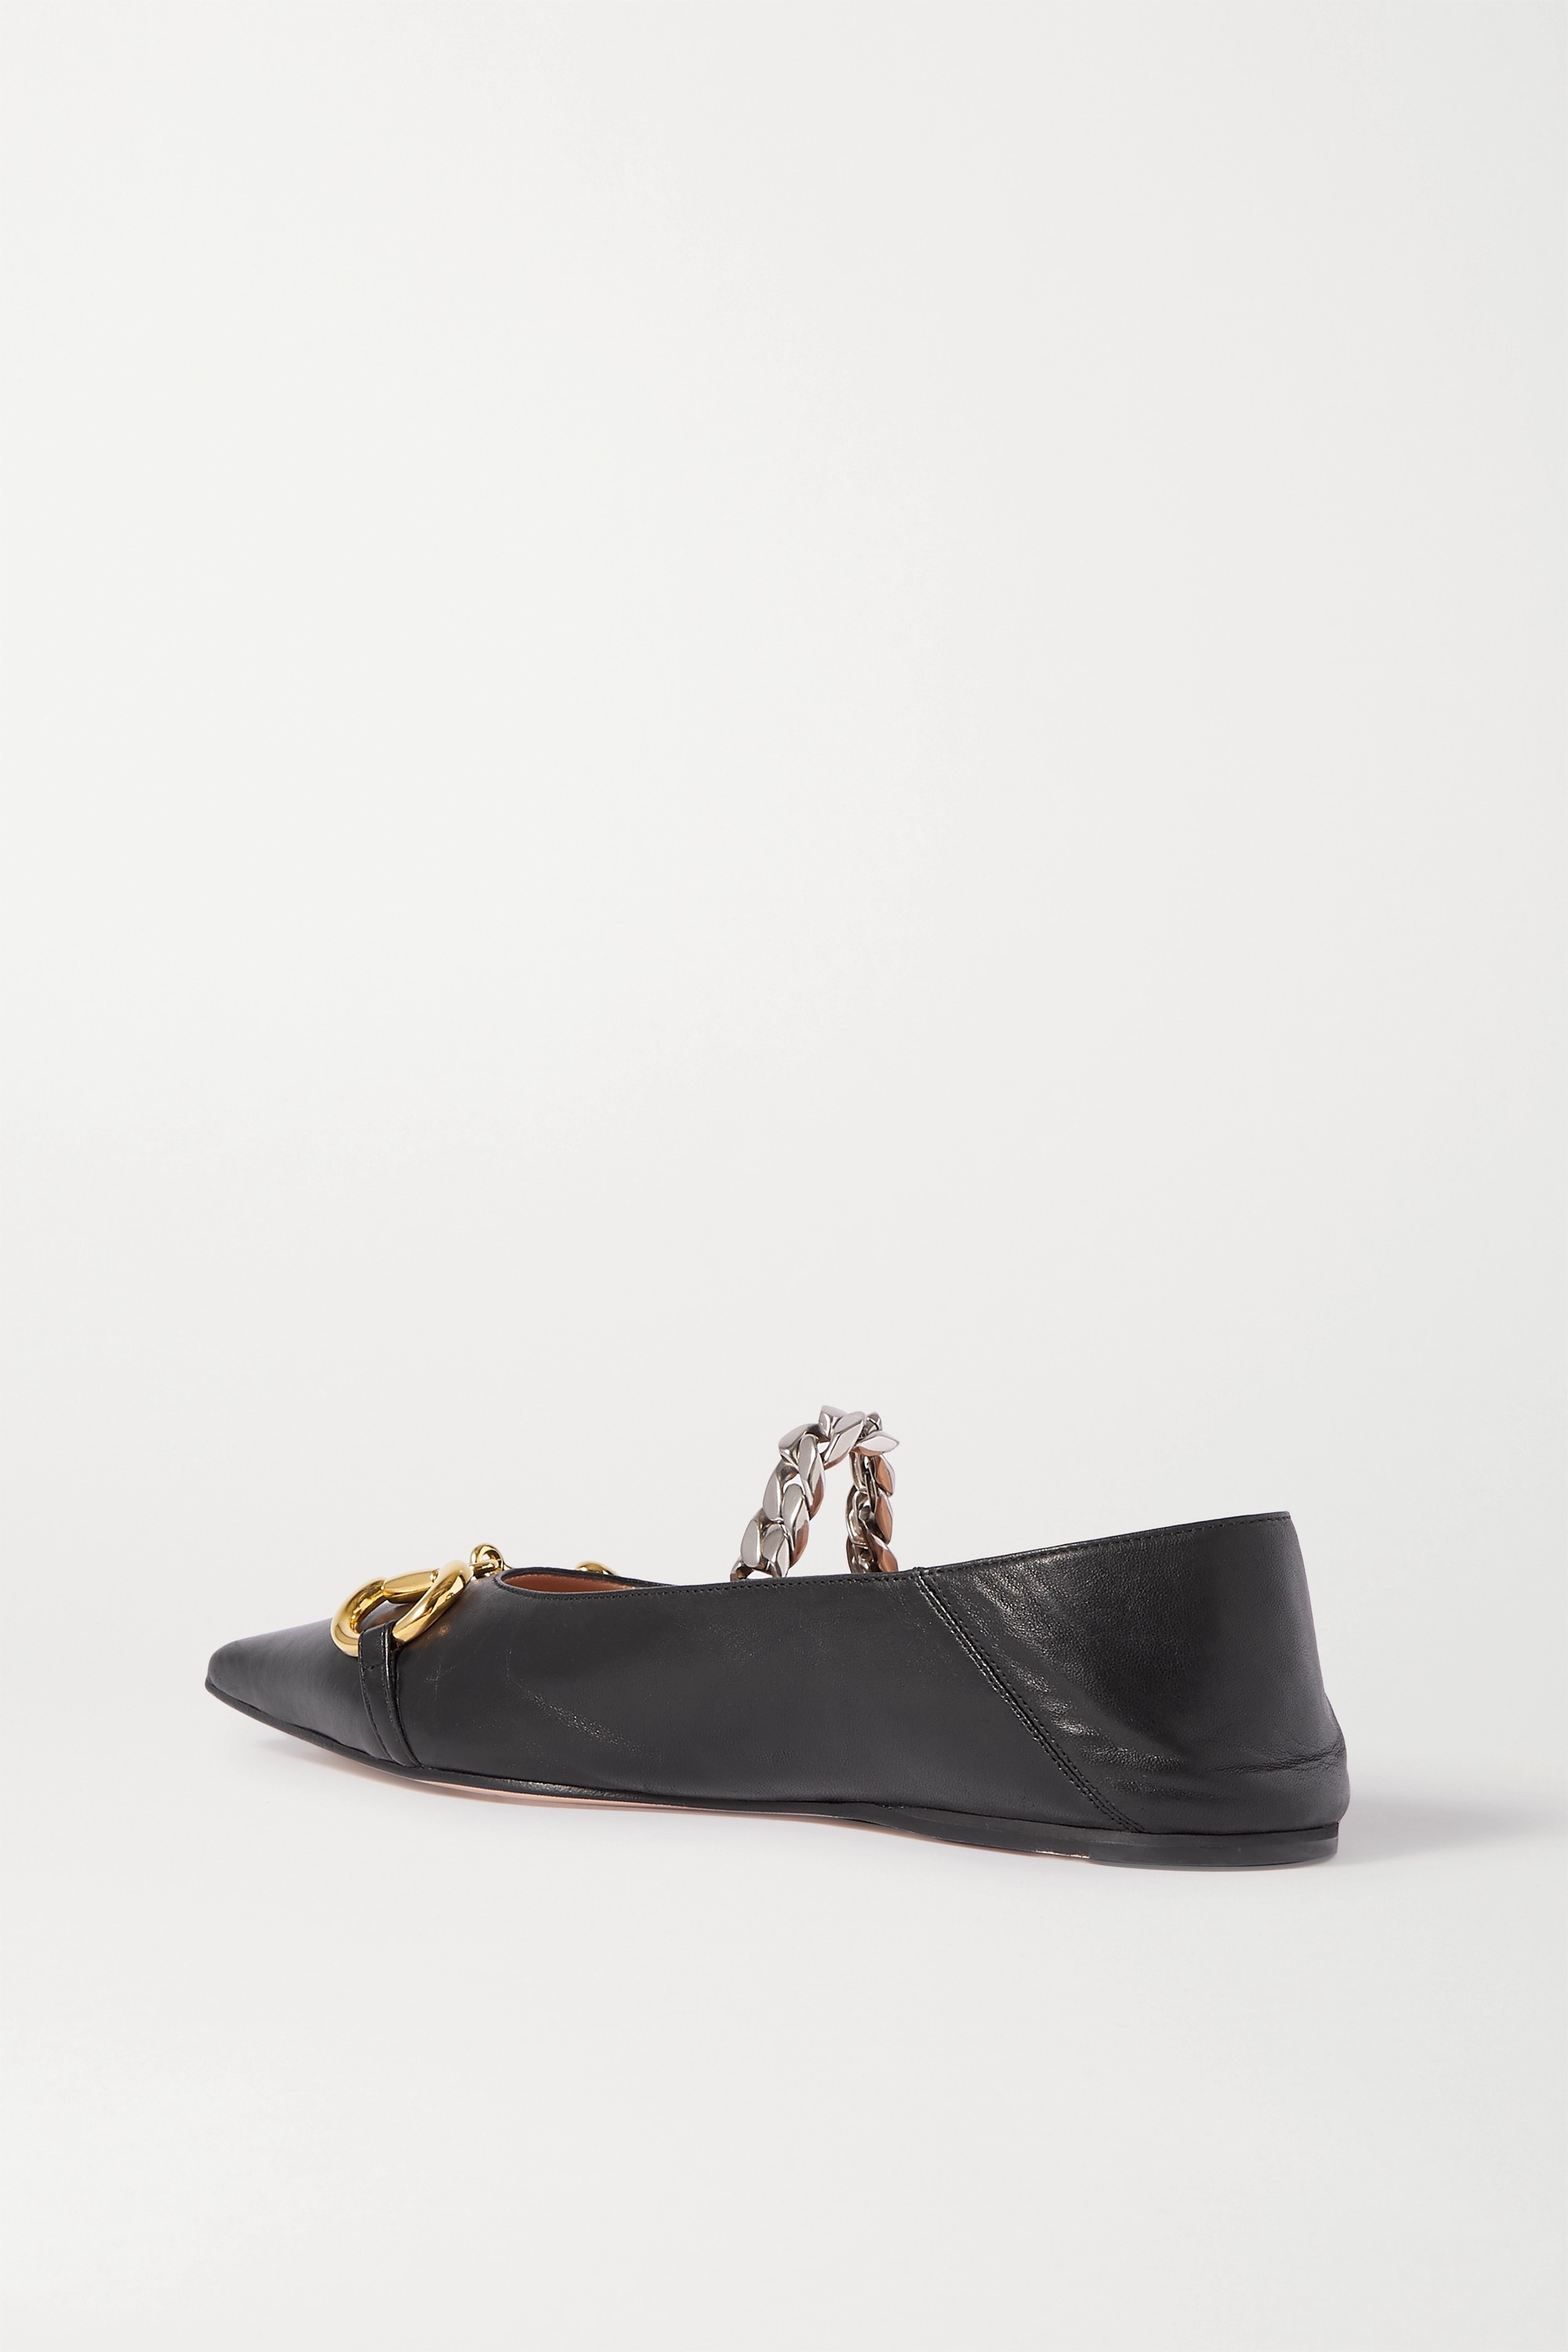 GUCCI Deva embellished leather collapsible-heel point-toe flats